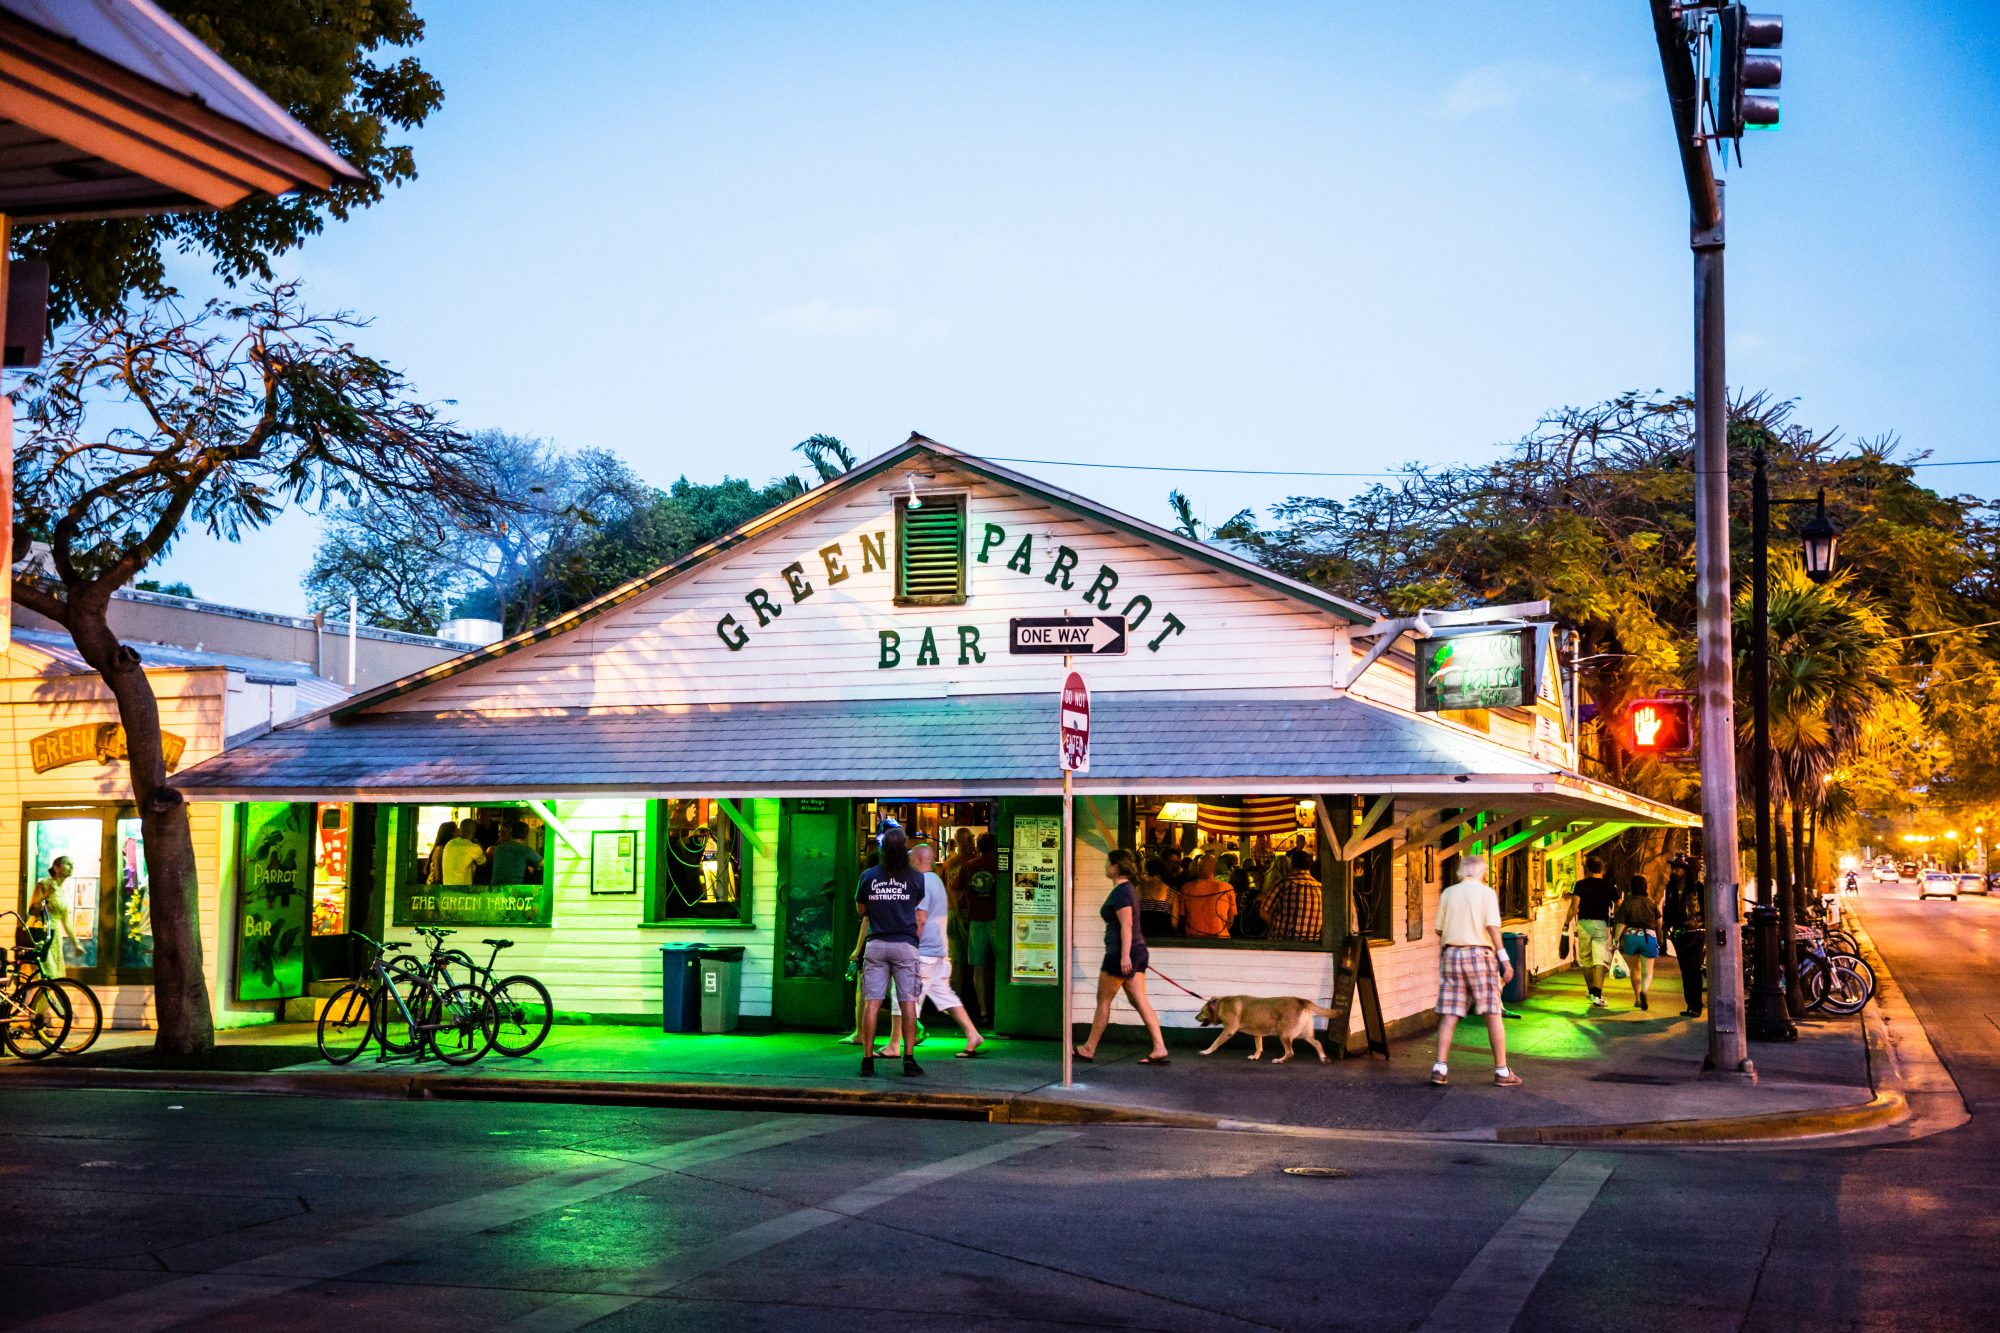 1. Green Parrot Bar (Key West, Florida)